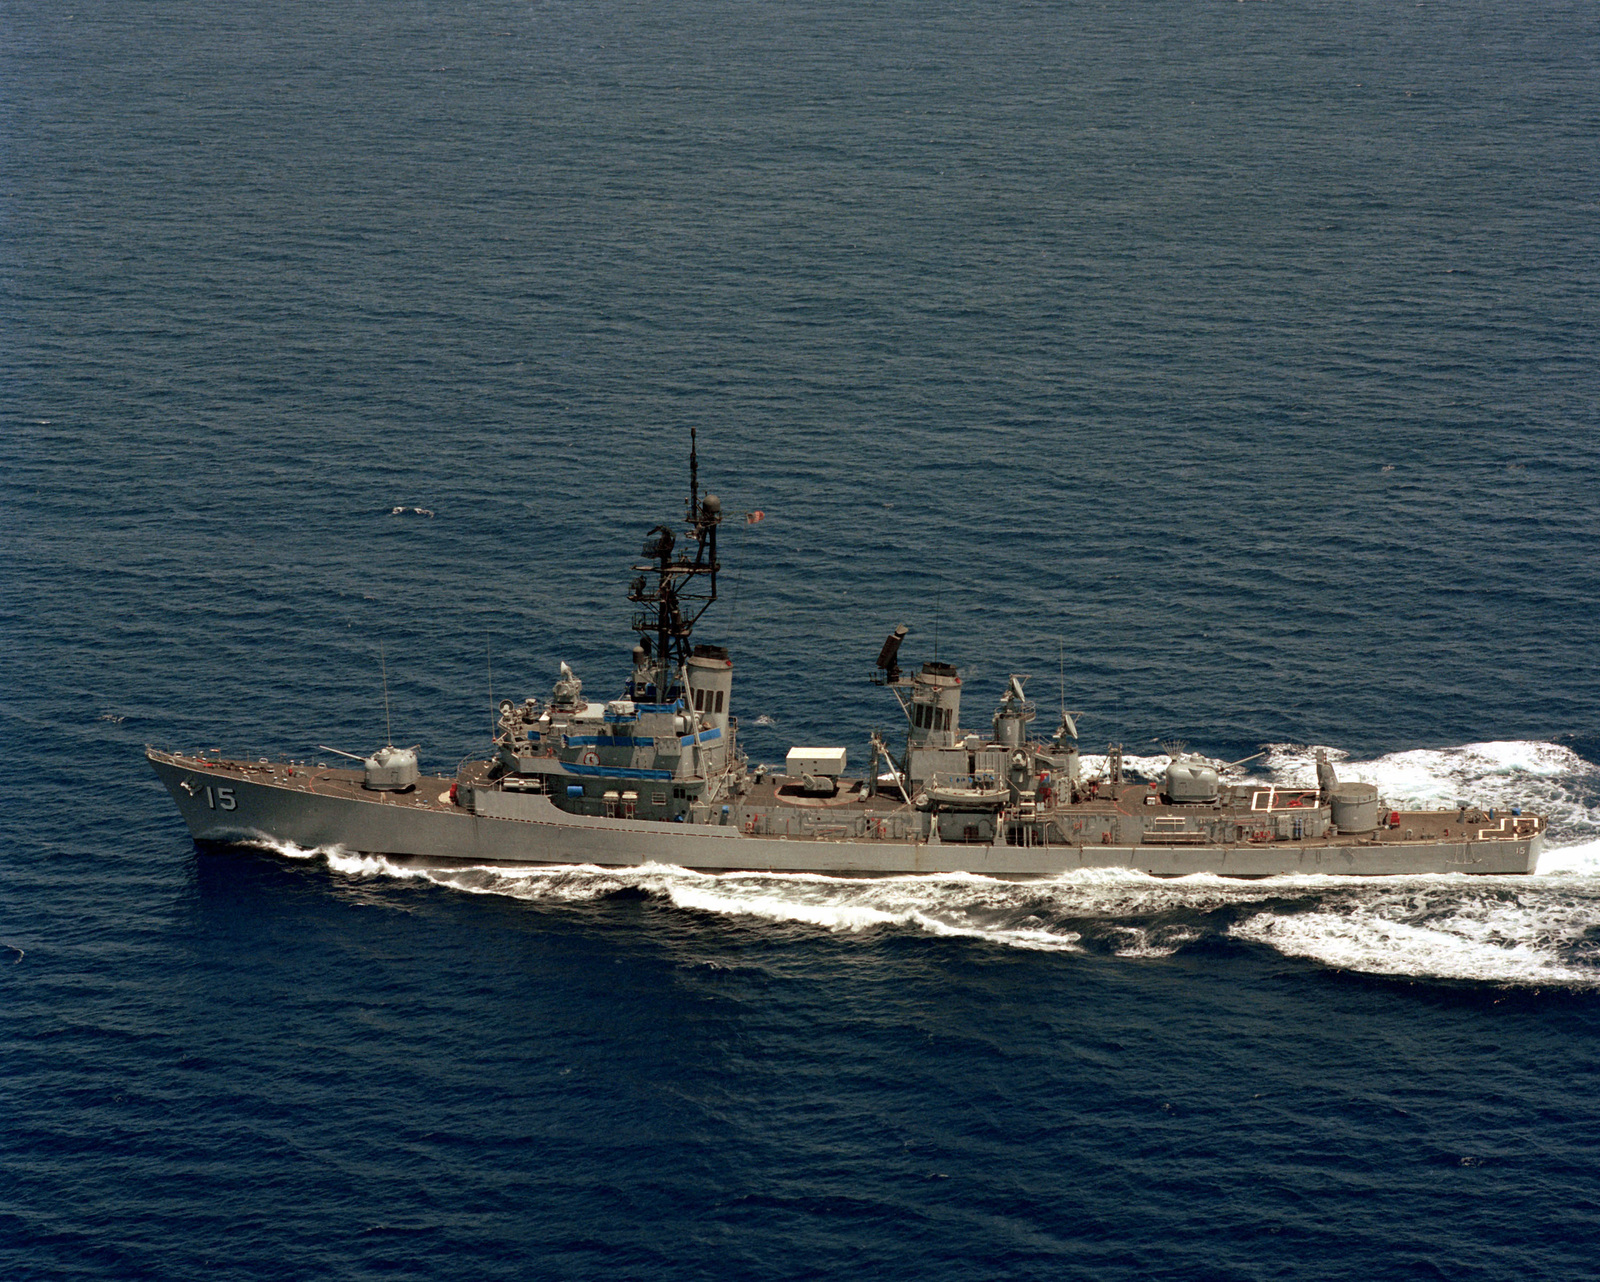 Aerial port beam view of the Charles F. Adams class guided missile destroyer USS BERKELEY (DDG 15) underway